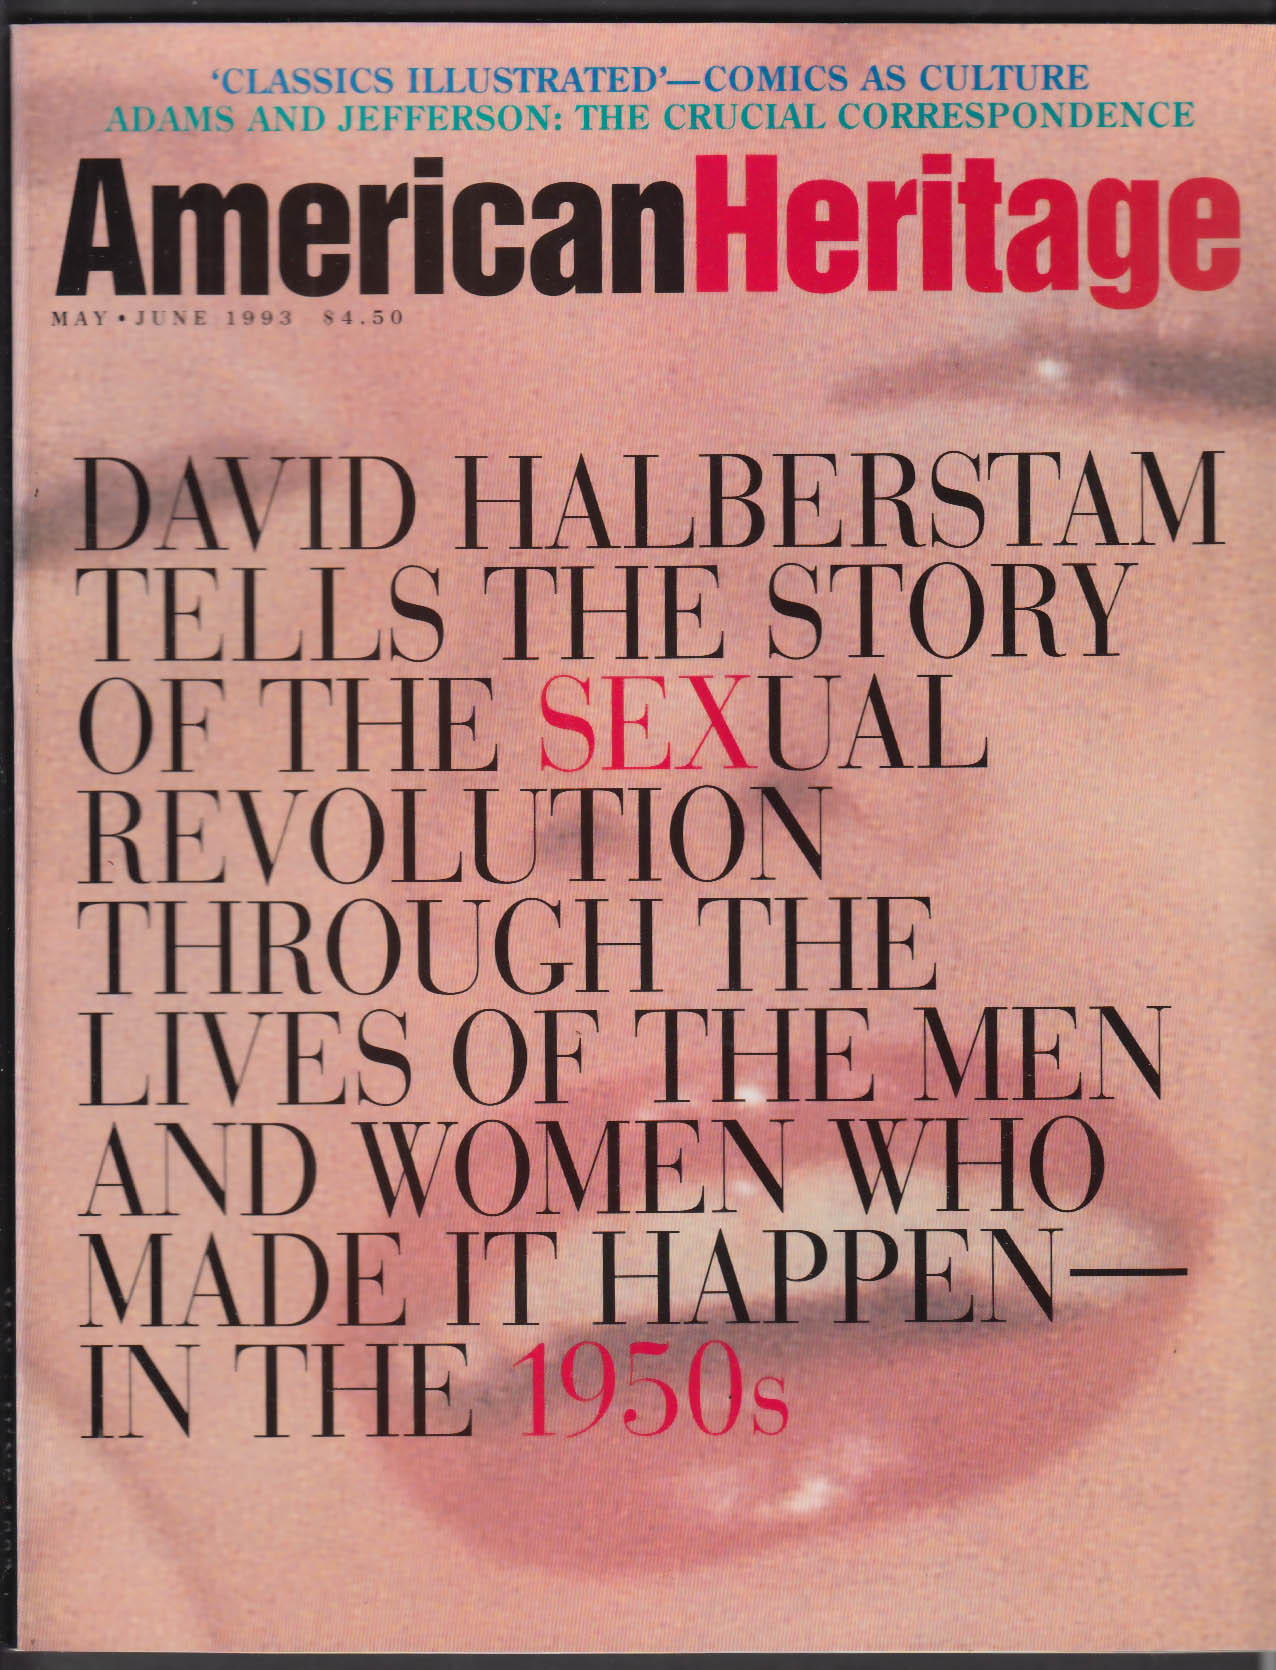 AMERICAN HERITAGE David Halberstam Sex 1950s Adams Jefferson ++ 5-6 1993